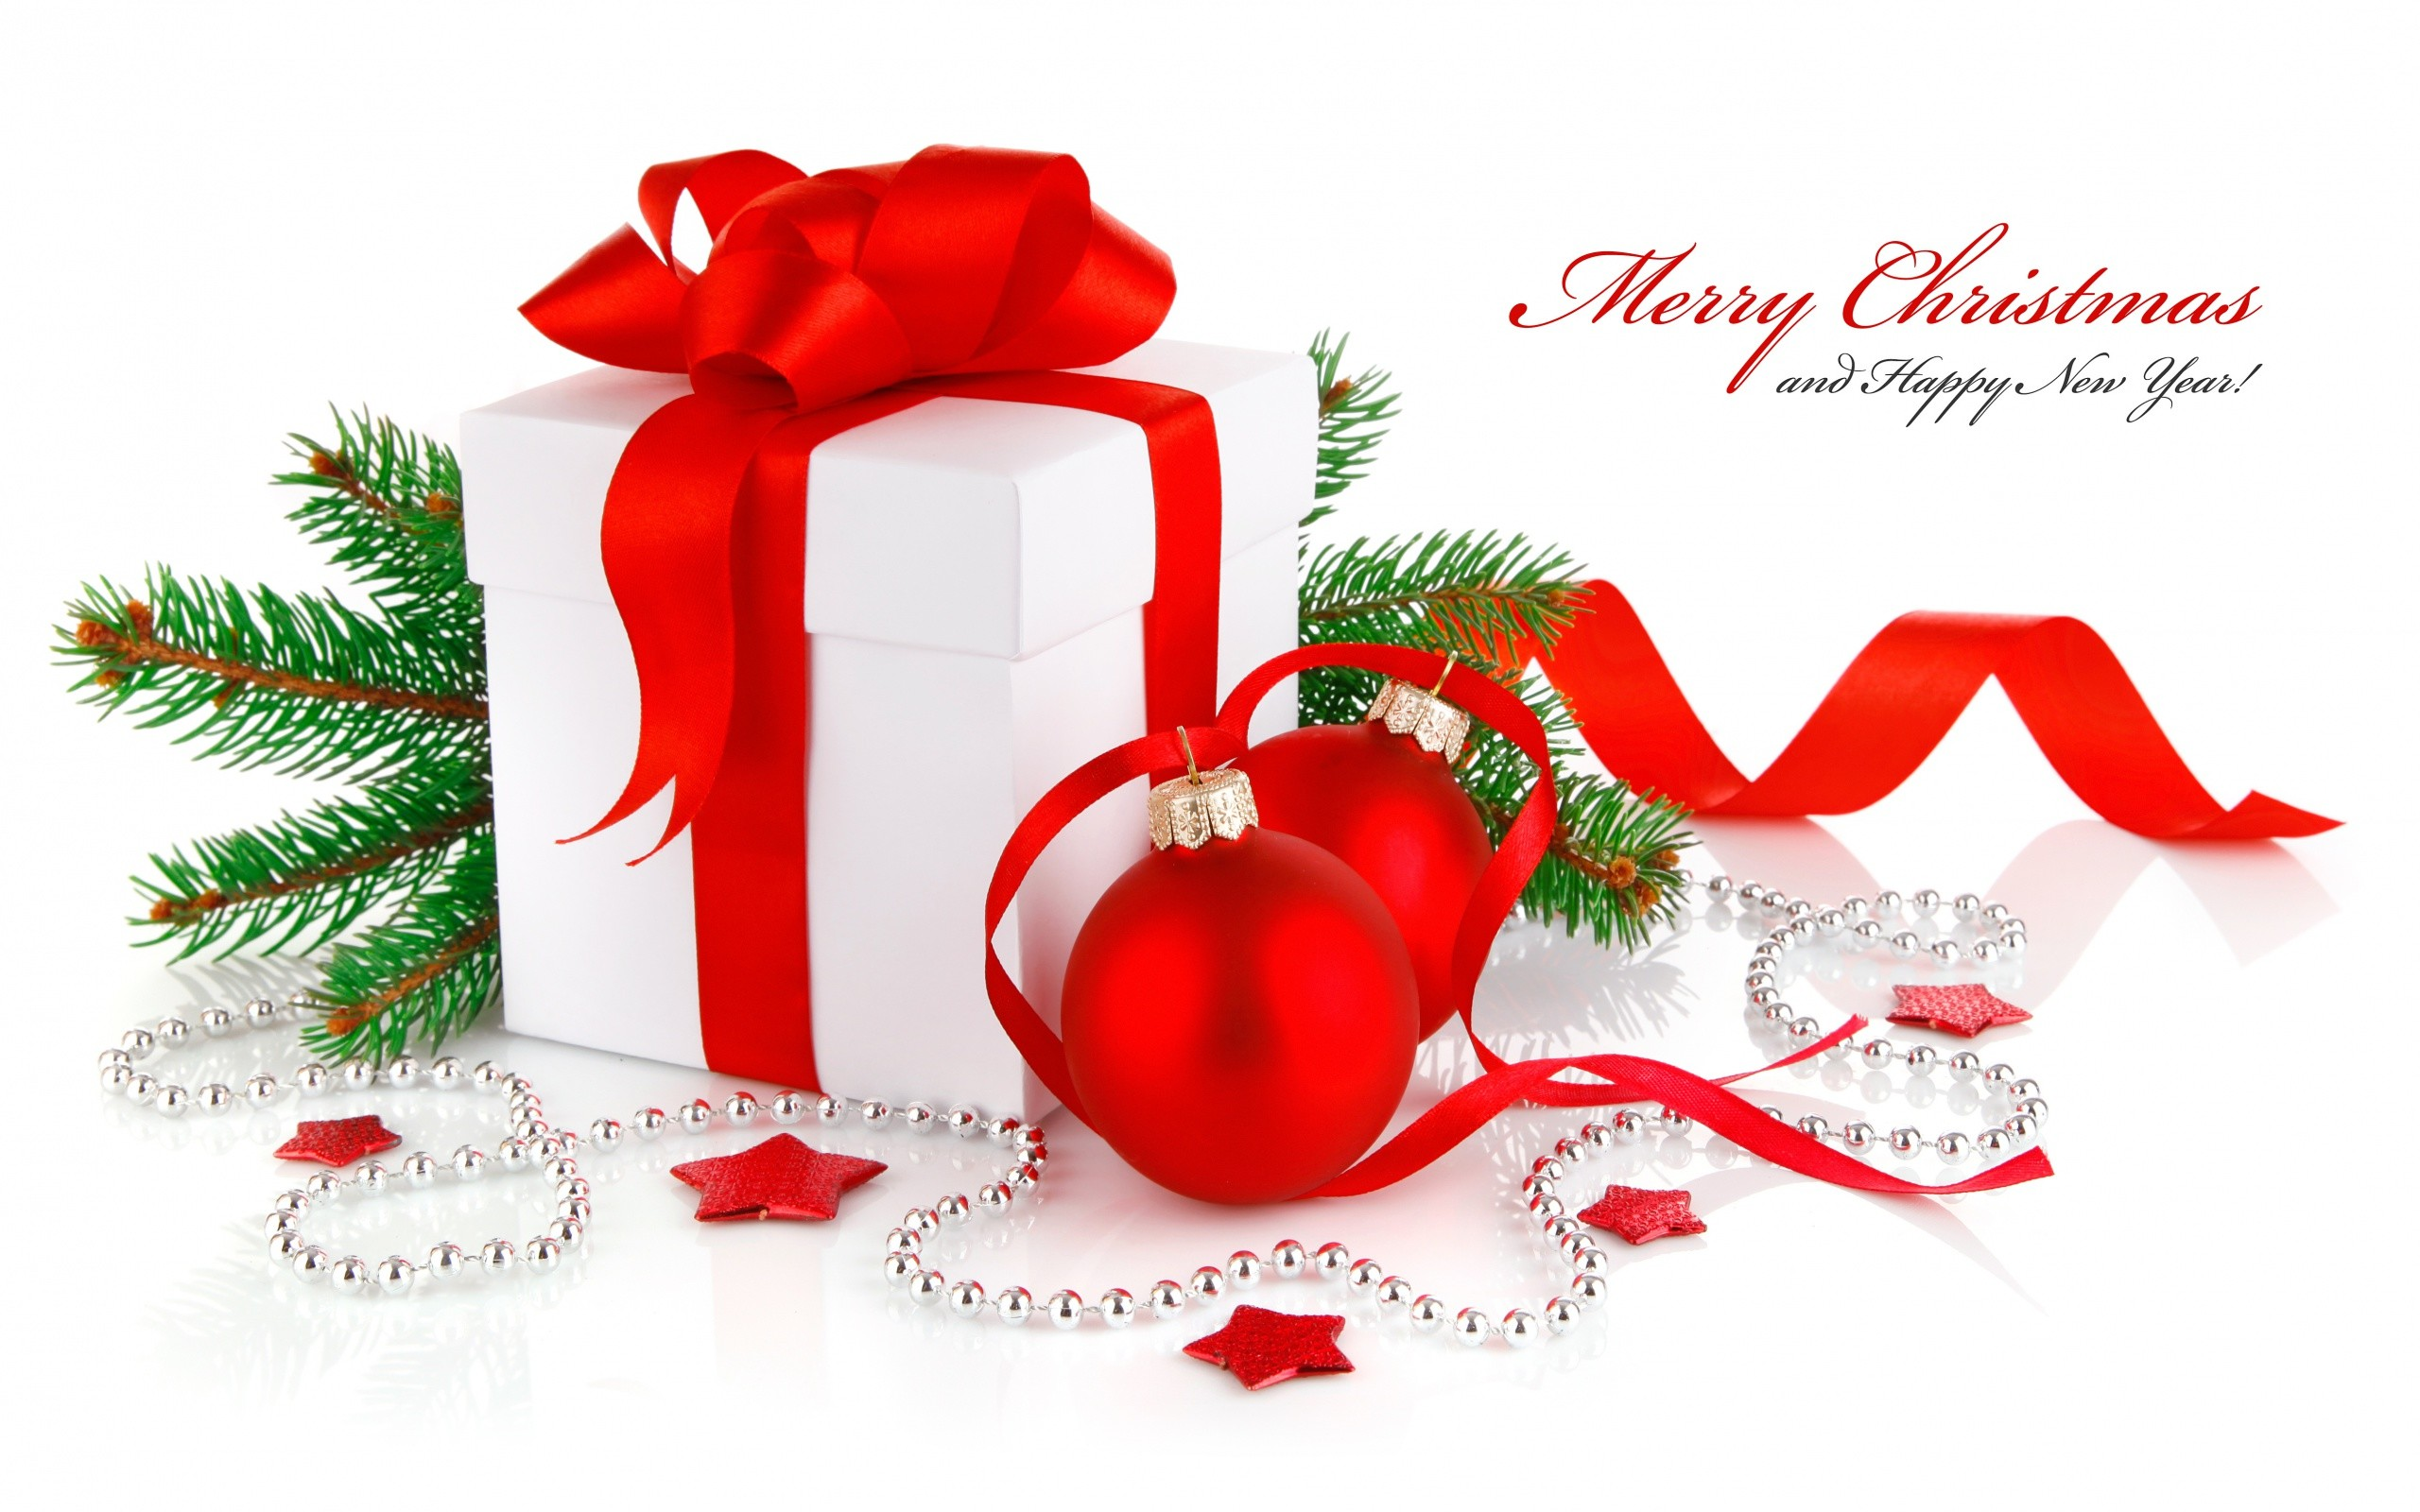 2560x1600 Merry Christmas Gifts Wallpaper Quotes Wallpaper Christmas And New Year Gifts 2560x1600 Wallpaper Teahub Io